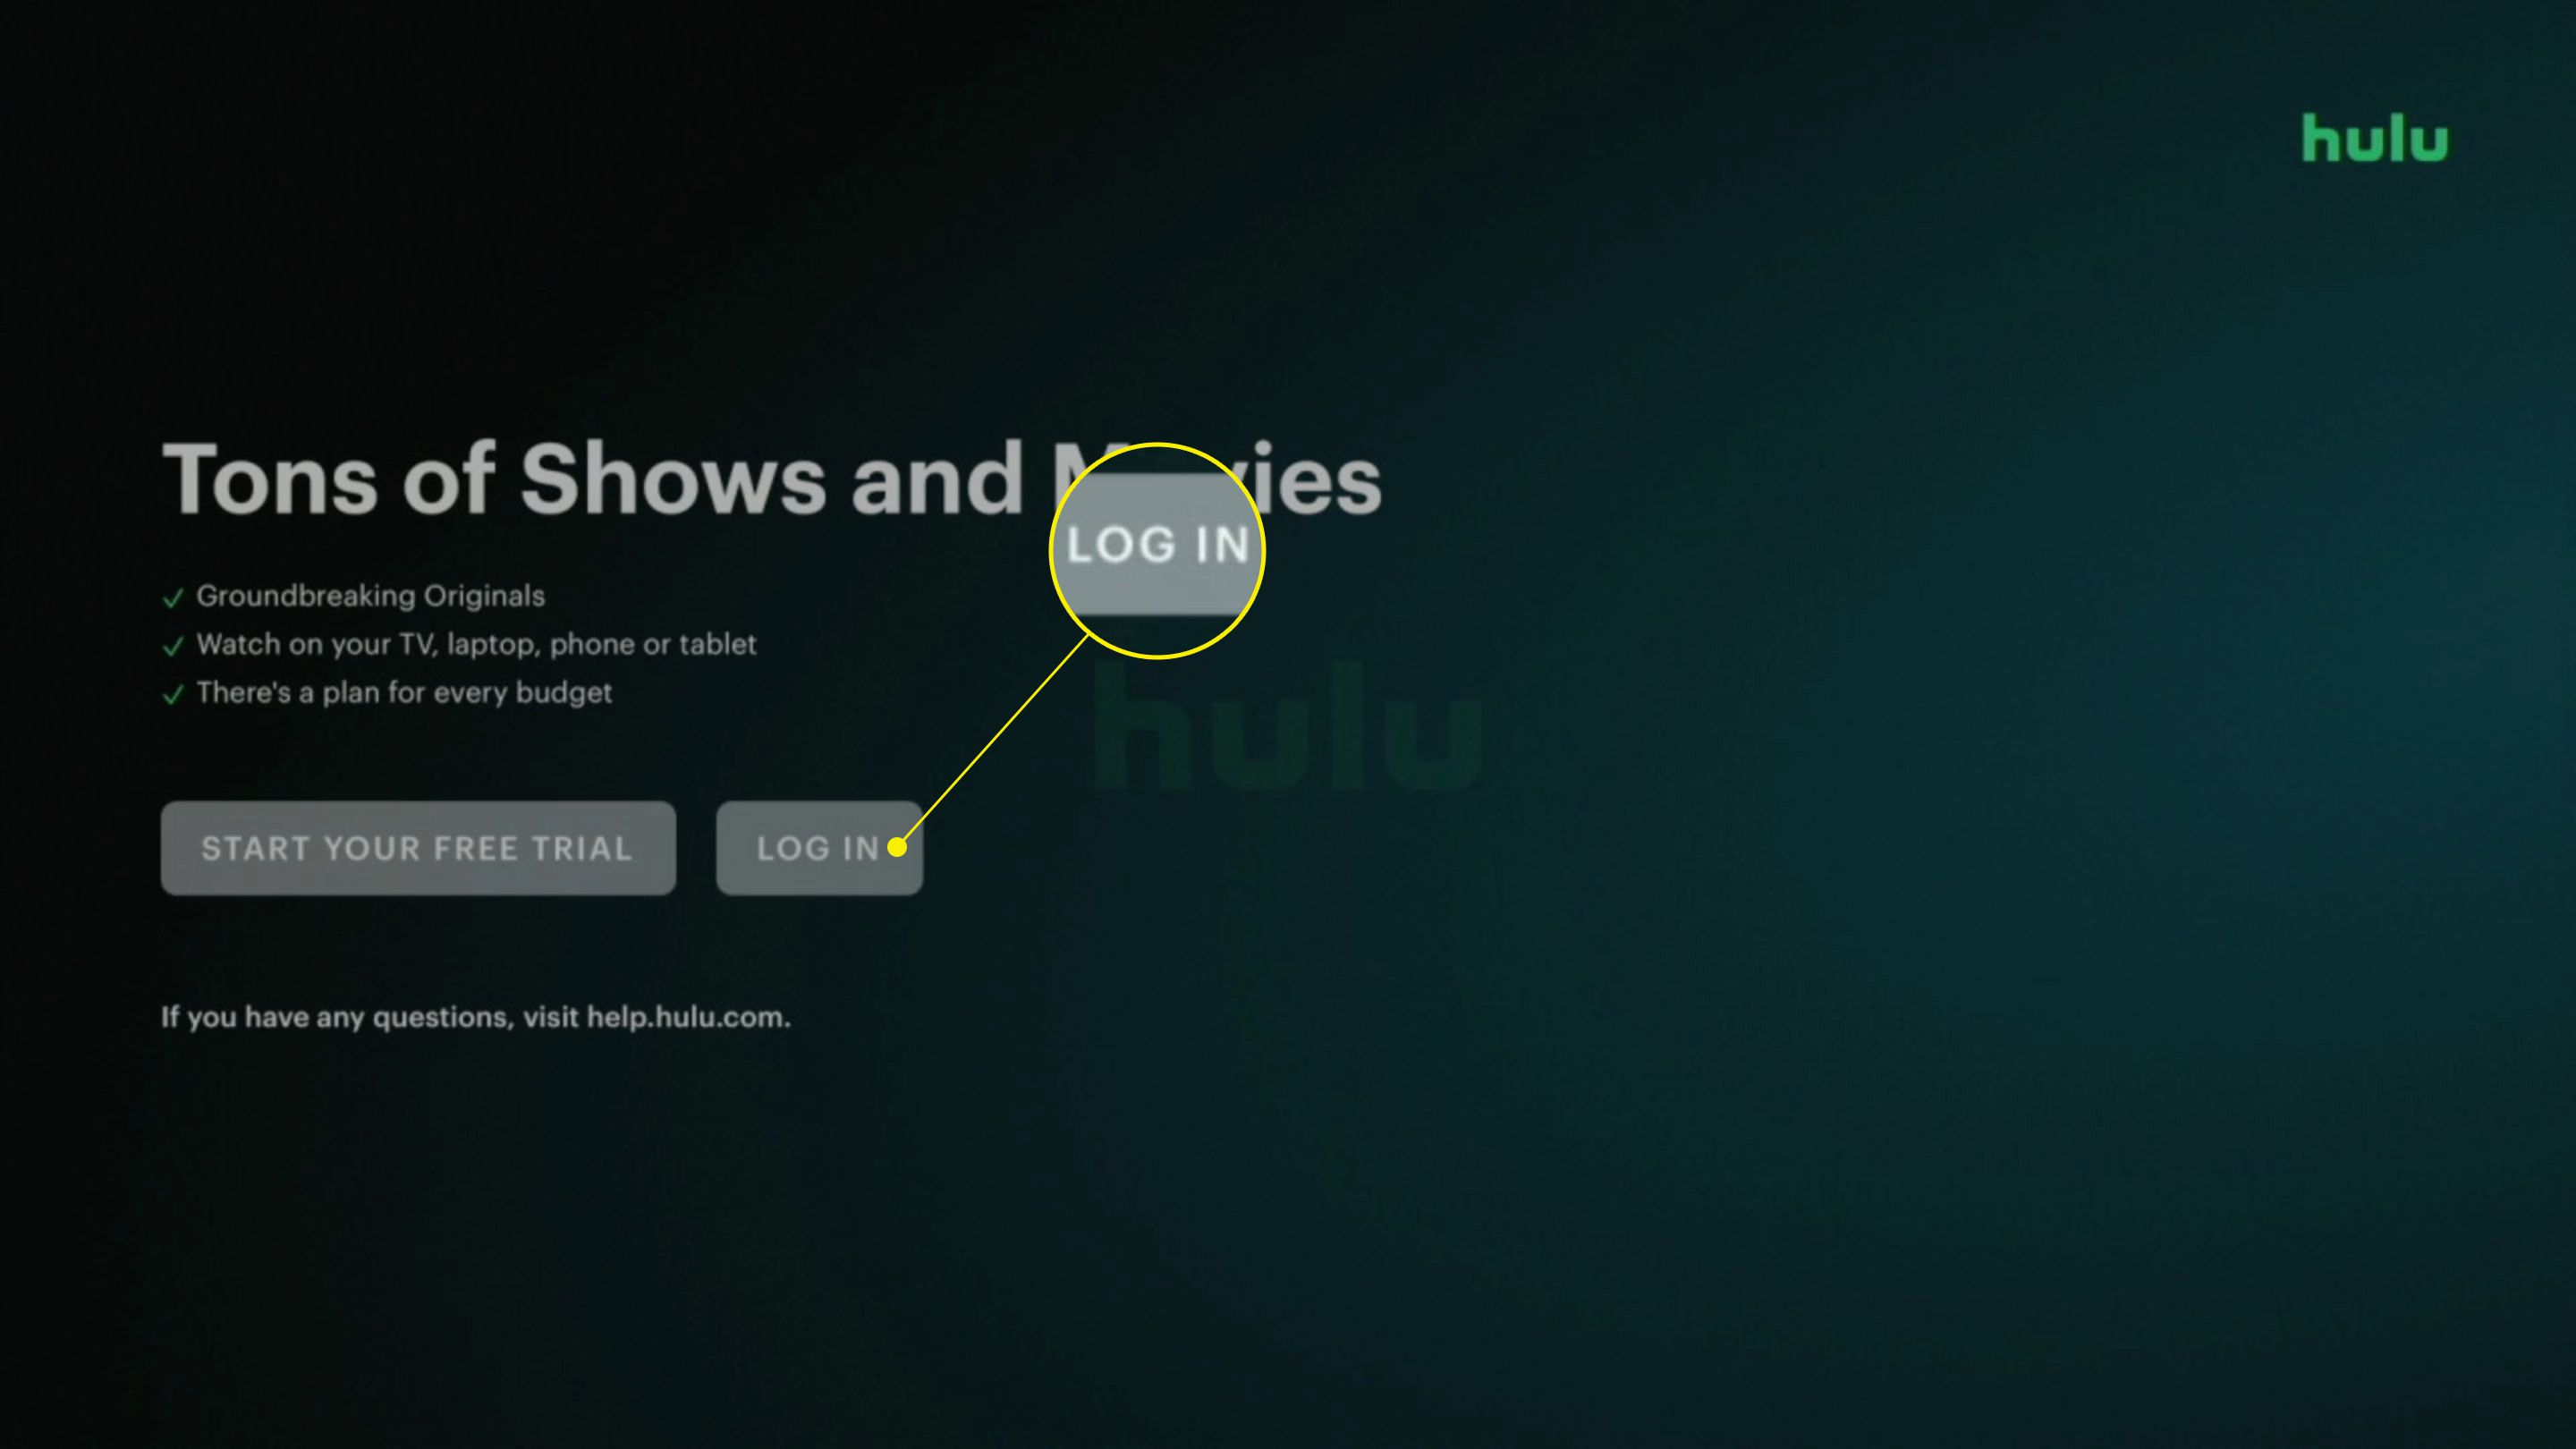 The login page in the Hulu app with Log In highlighted